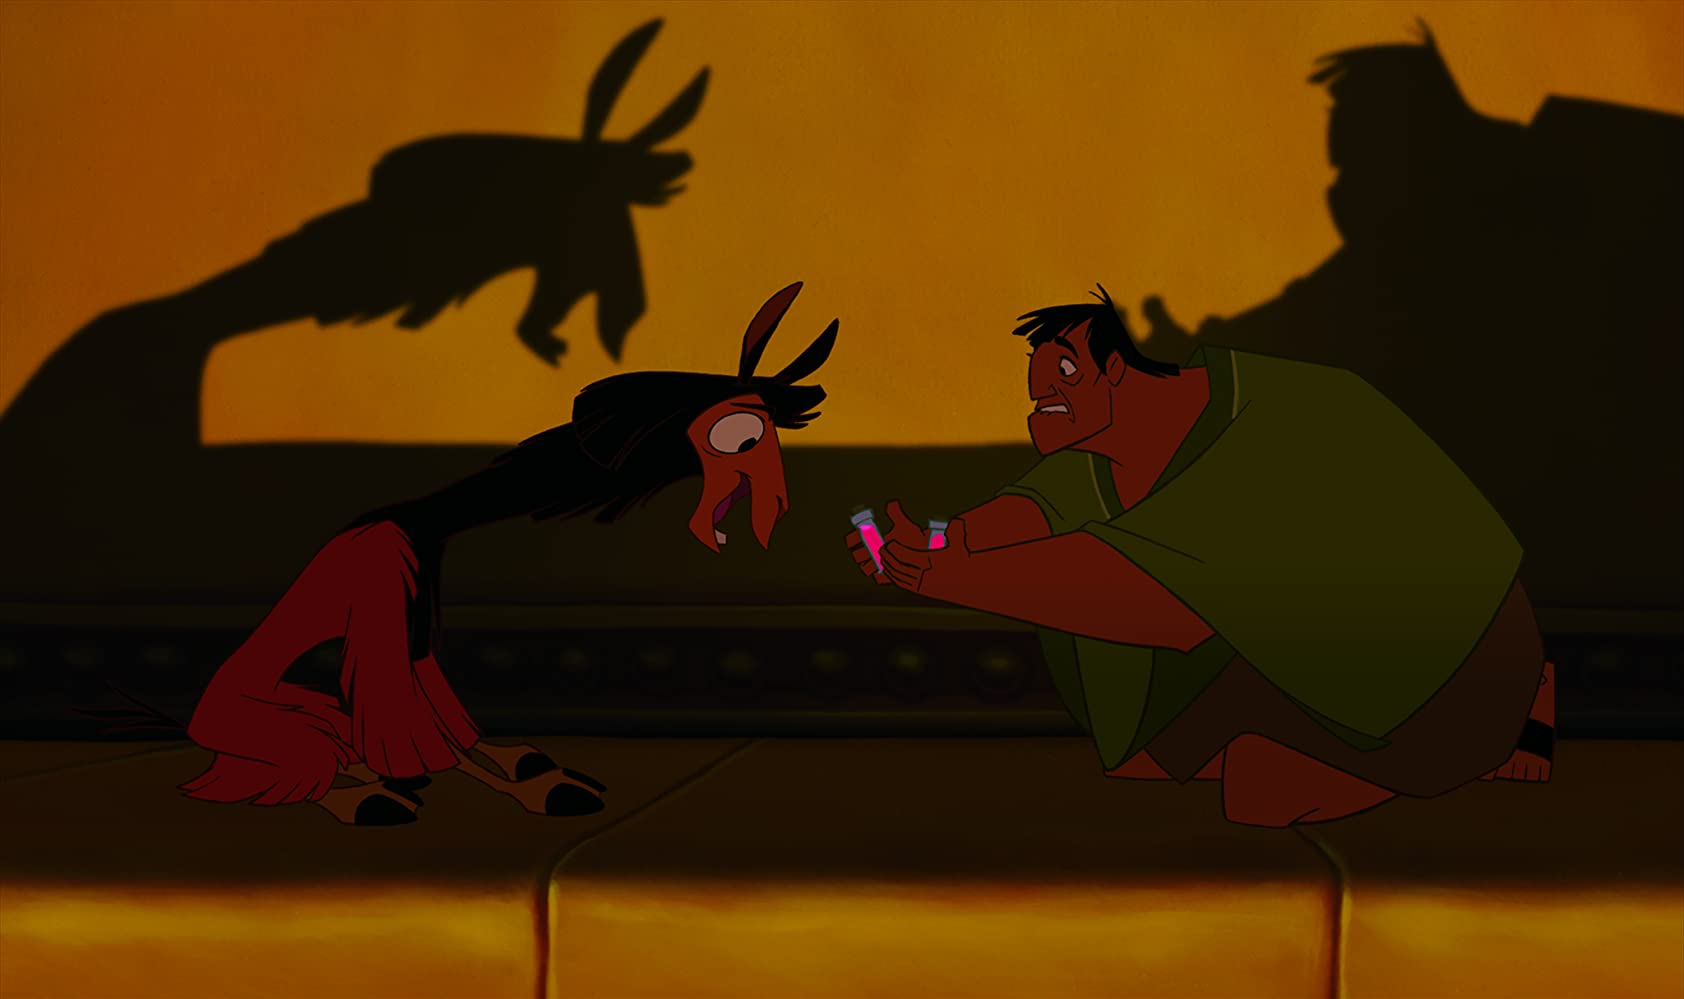 John Goodman and David Spade in Disney's The Emperor's New Groove (2000)